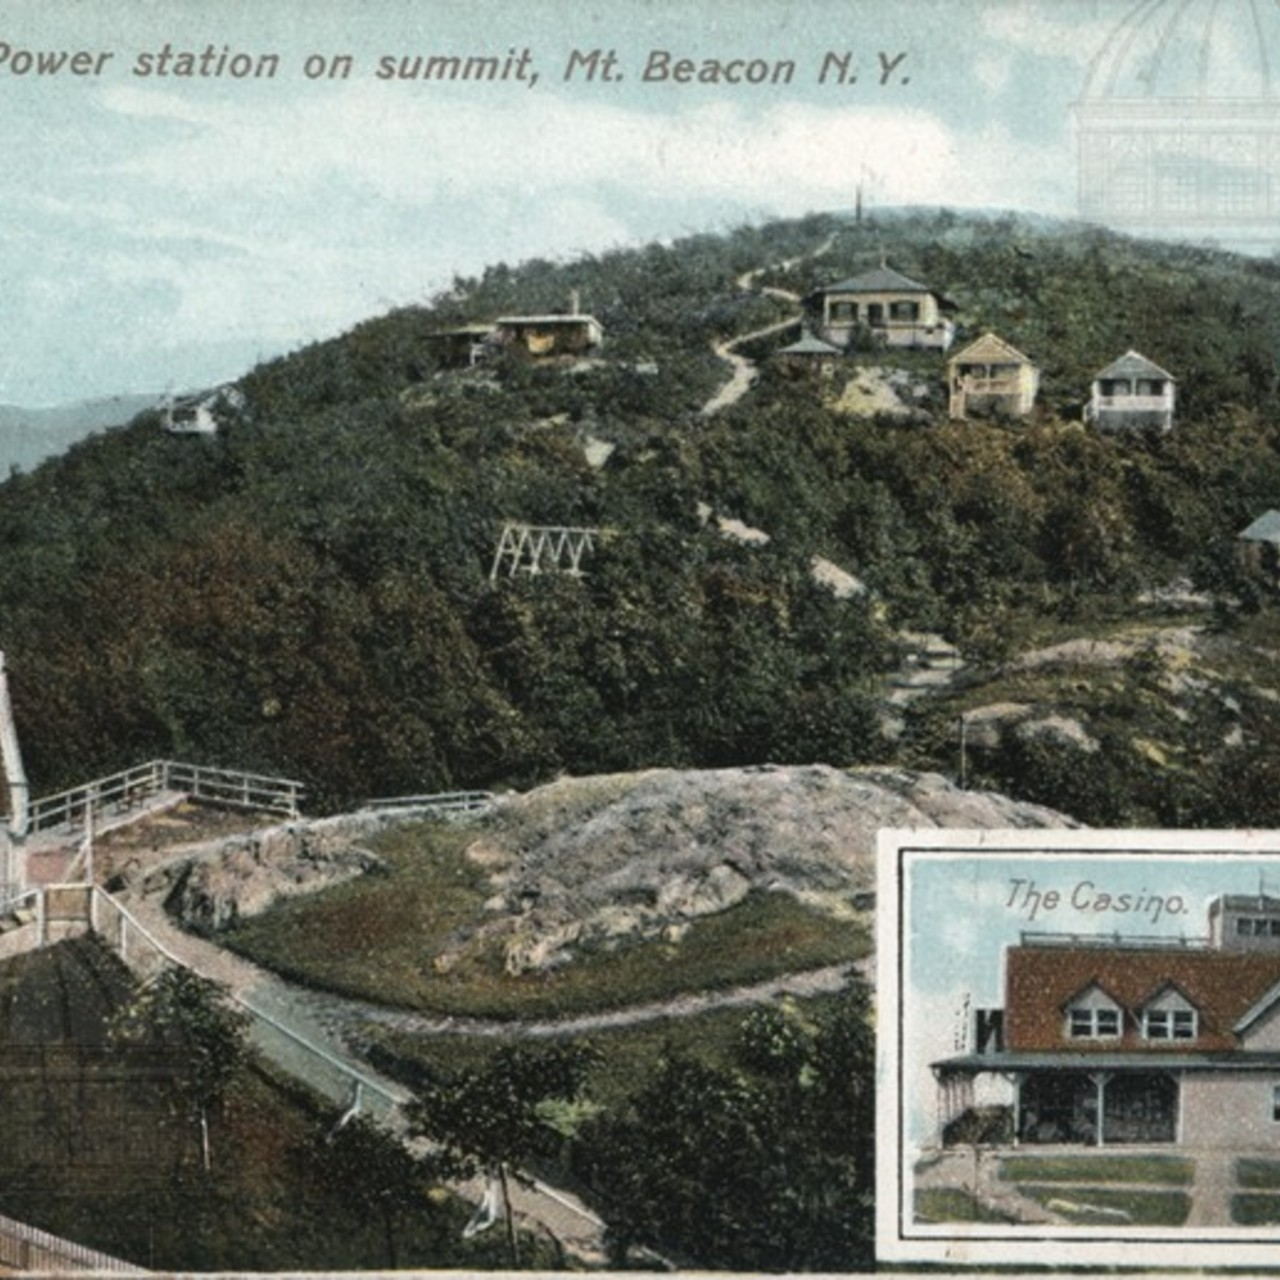 Cottages & Power Station on Summit, Mt. Beacon